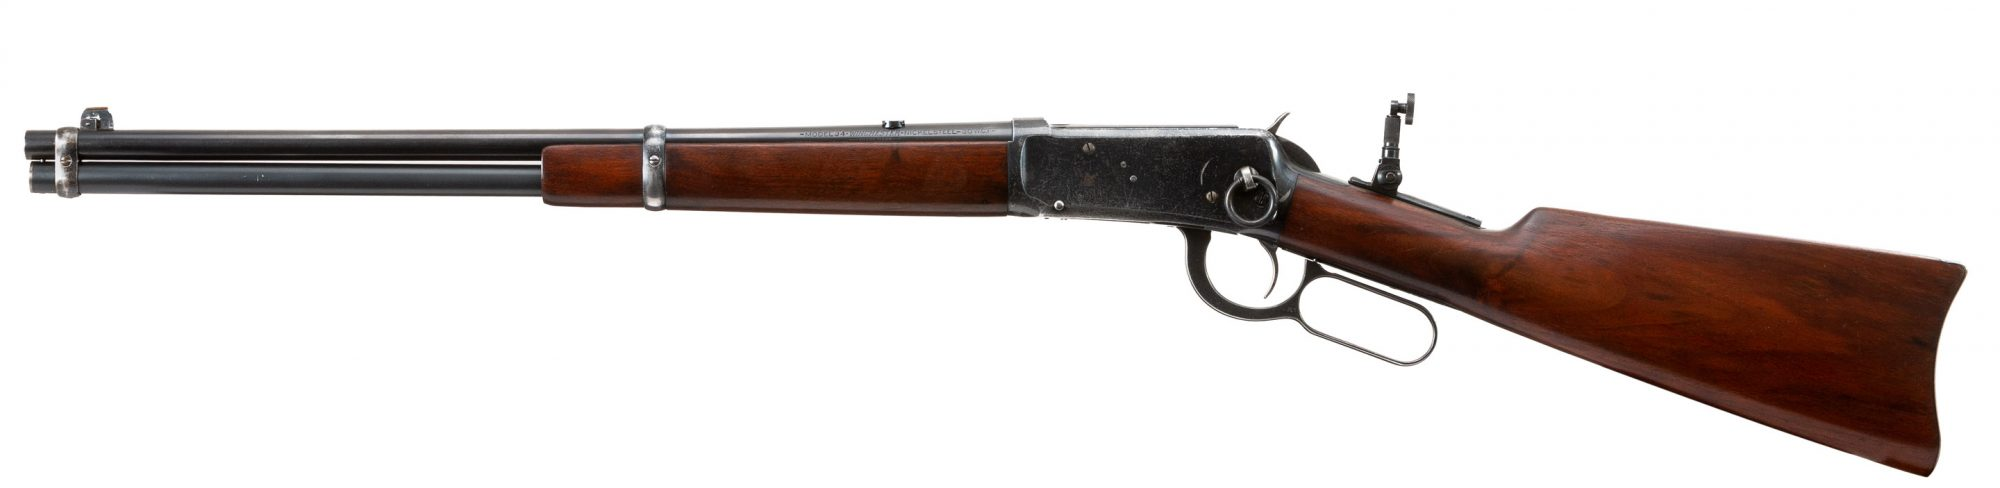 Photo of a pre-owned Winchester Model 94 SRC from 1926, for sale by Turnbull Restoration of Bloomfield, NY